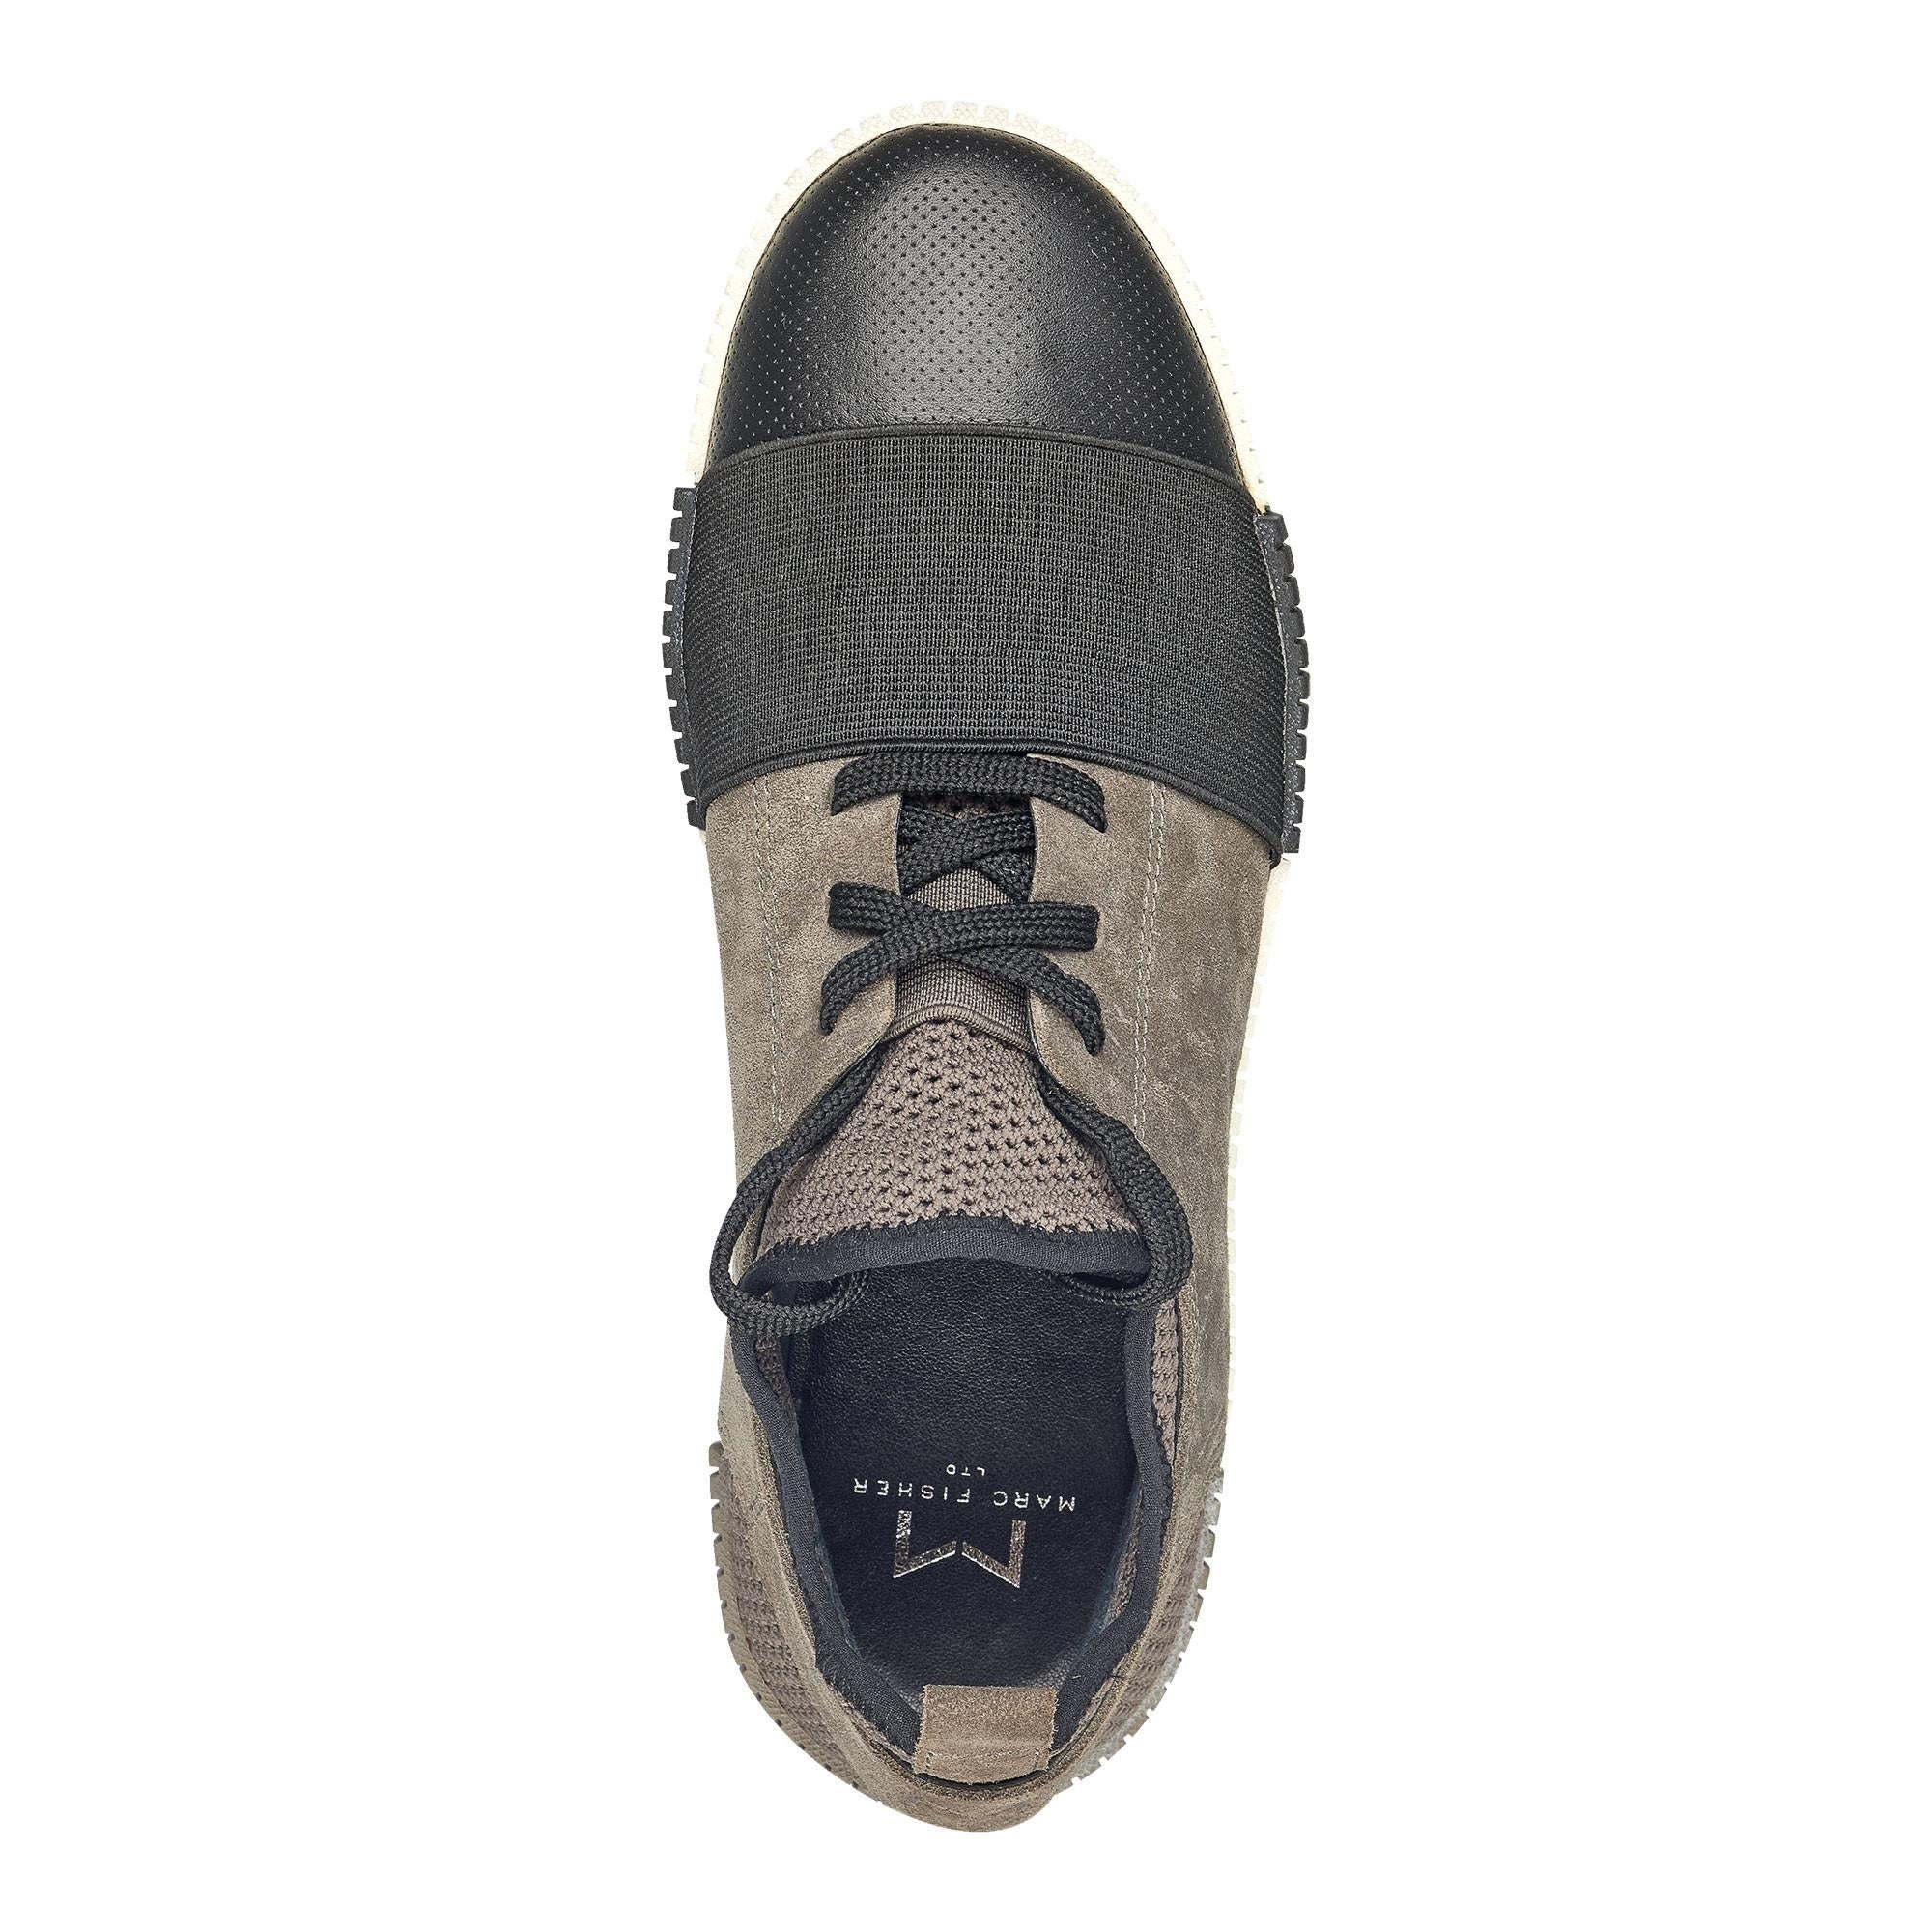 2be14554488 Shop Marc Fisher Womens Ryley Hight Top Lace Up Fashion Sneakers - Free  Shipping Today - Overstock - 19874071